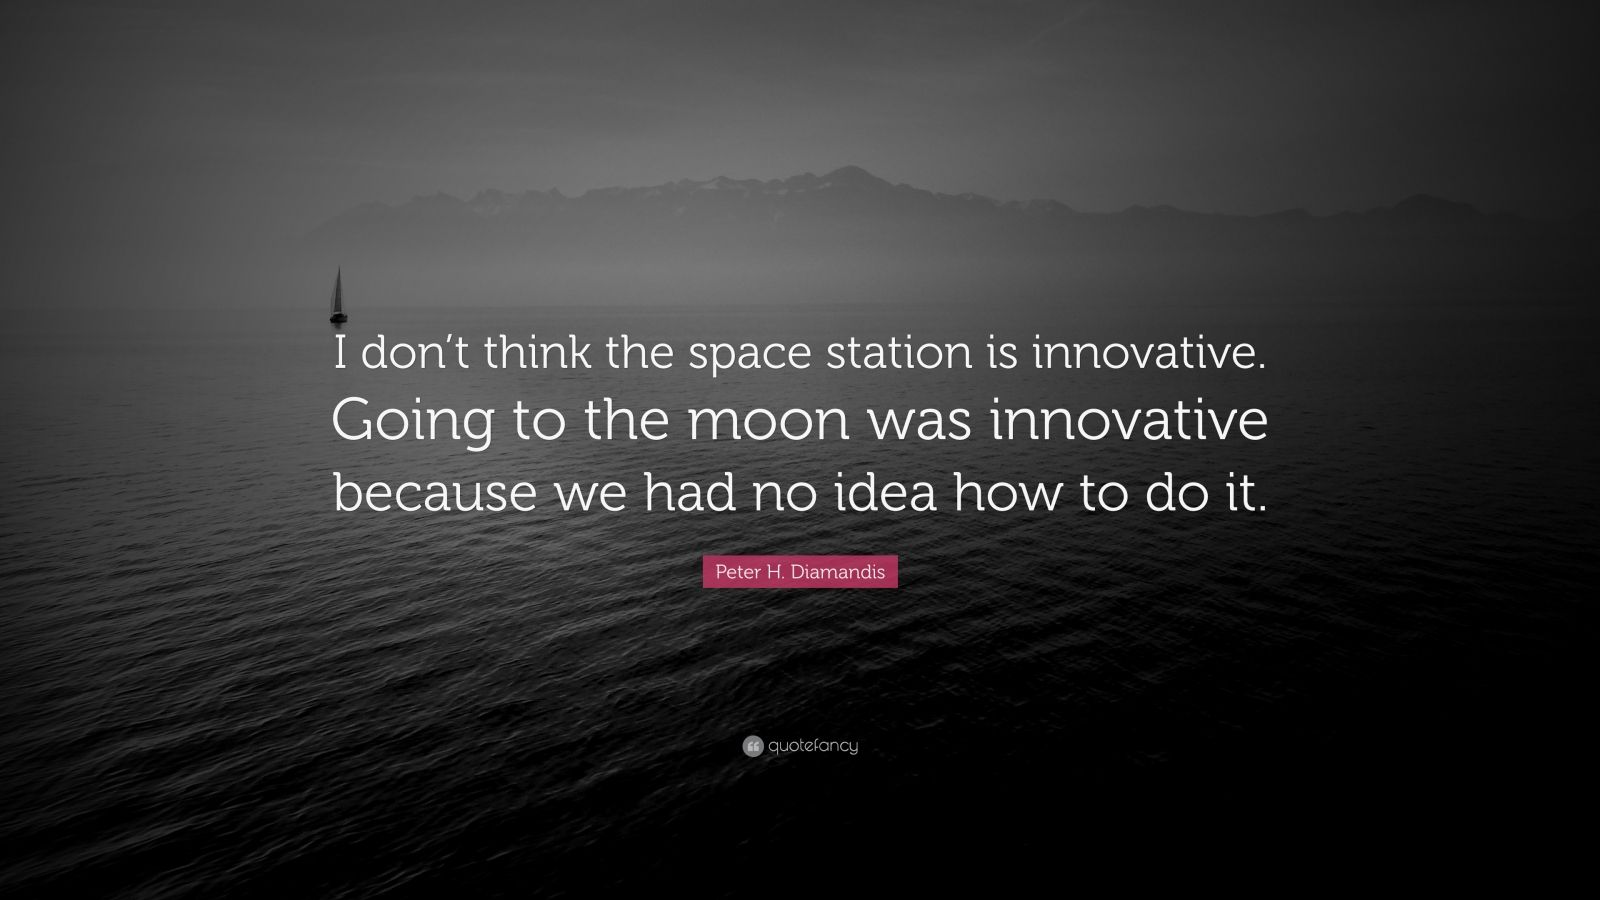 """Peter H. Diamandis Quote: """"I don't think the space station is innovative. Going to the moon was innovative because we had no idea how to do it."""""""